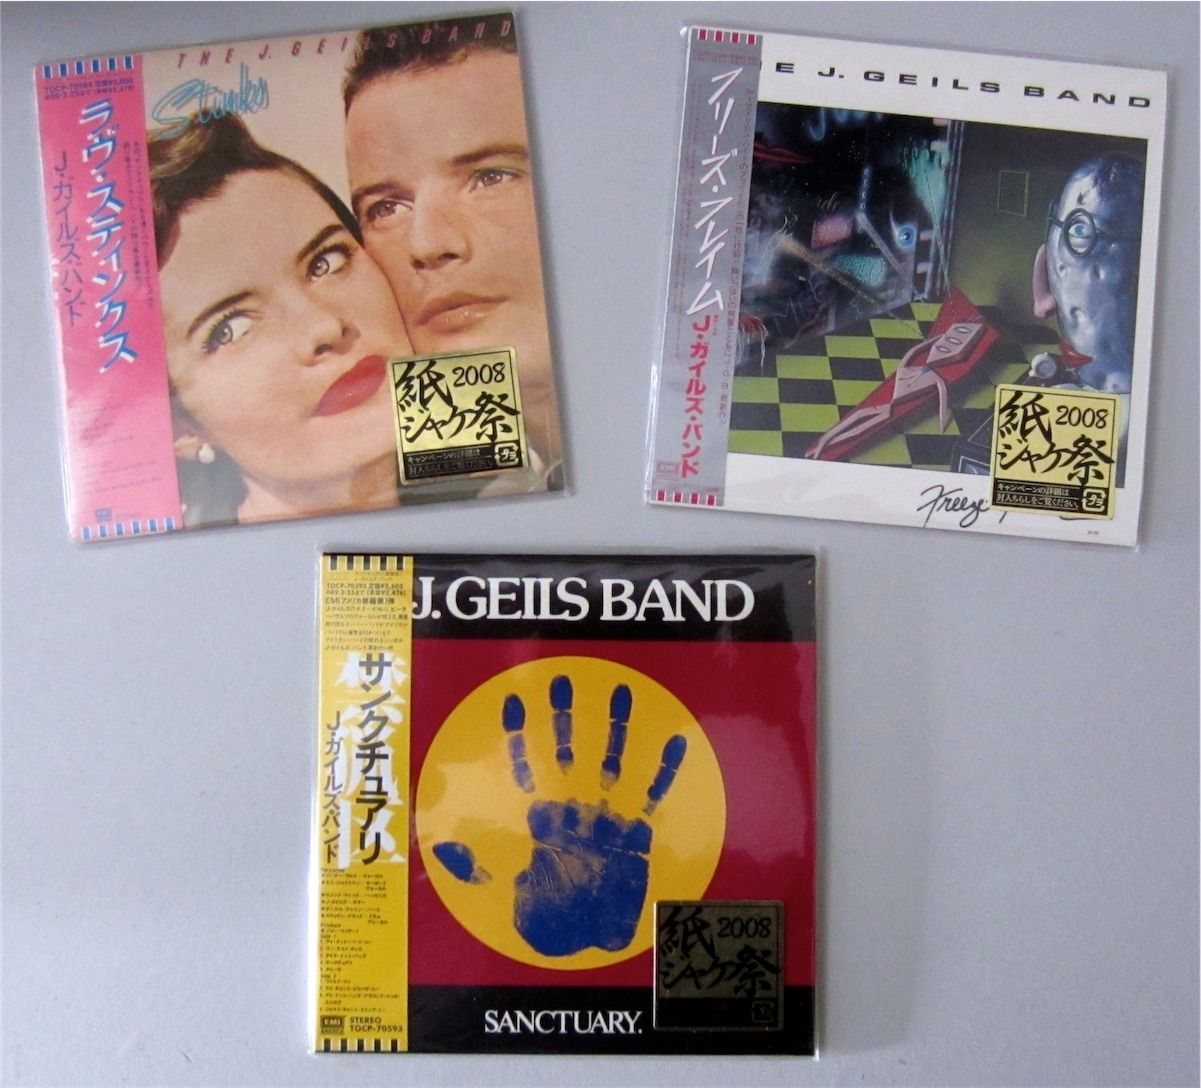 Memorabilia: Japan Mini LP Replica CDs – Sanctuary, Love Stinks ...